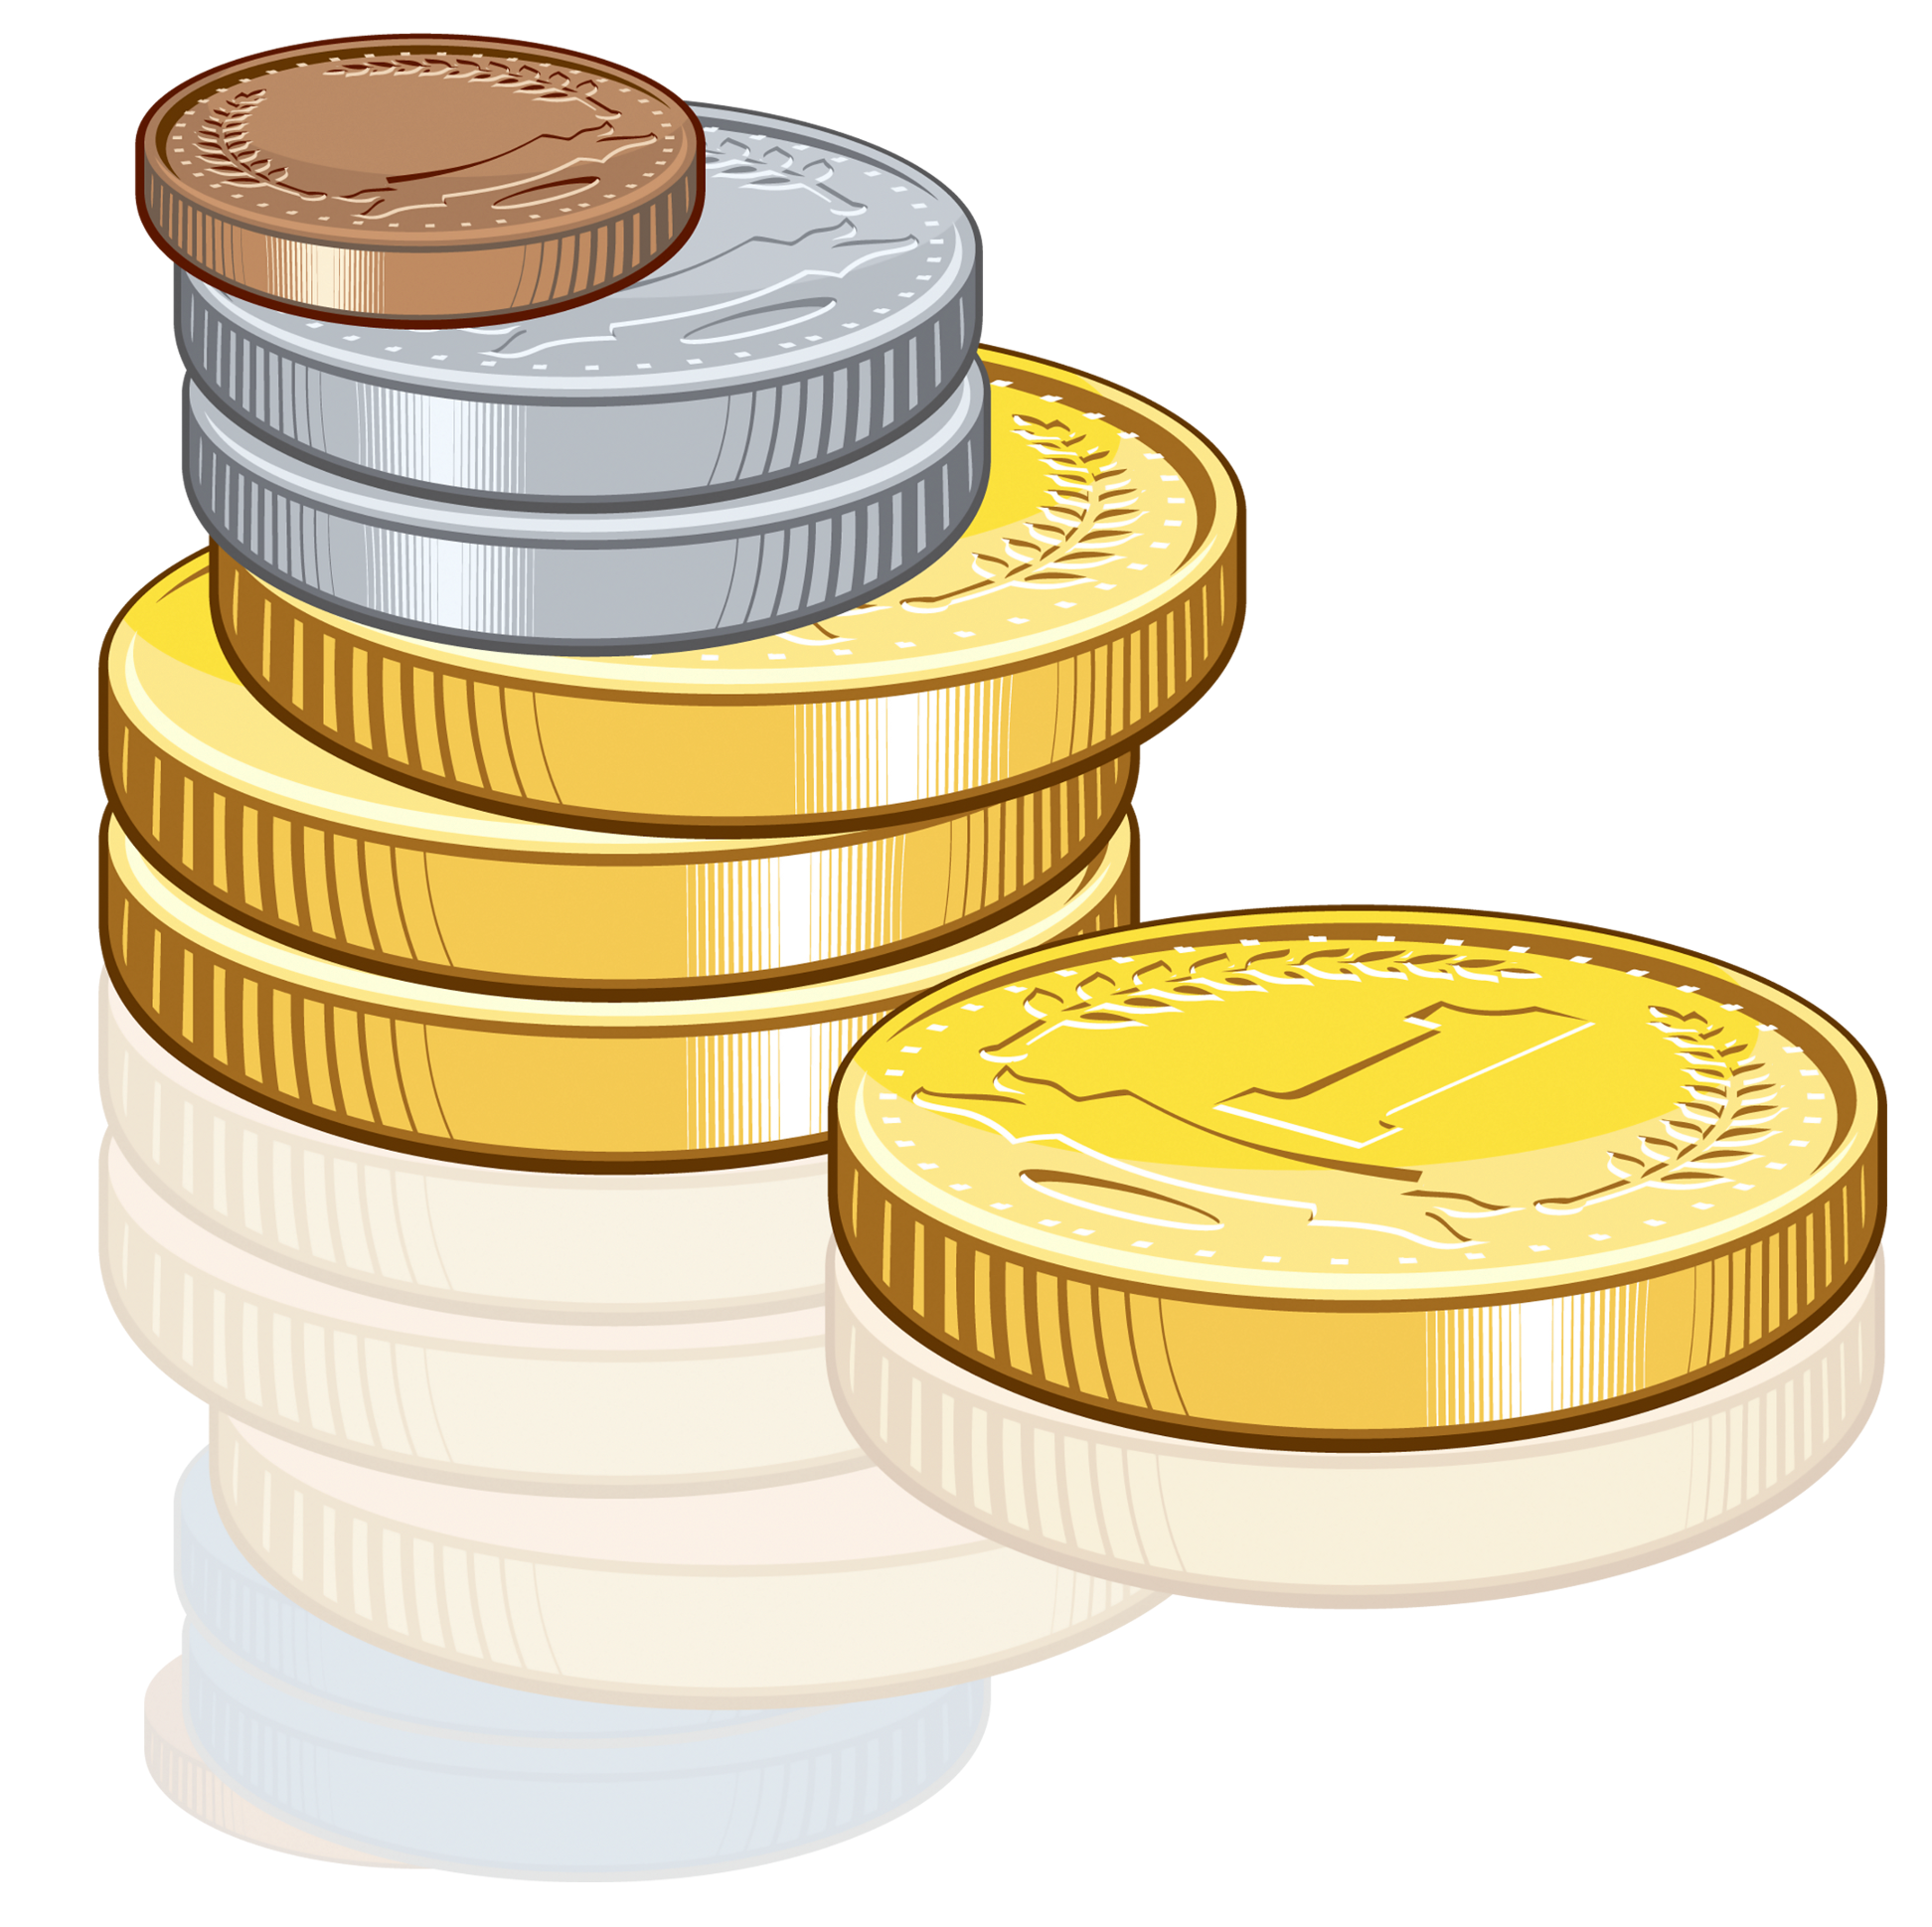 Coins Clipart Image-Coins clipart image-15